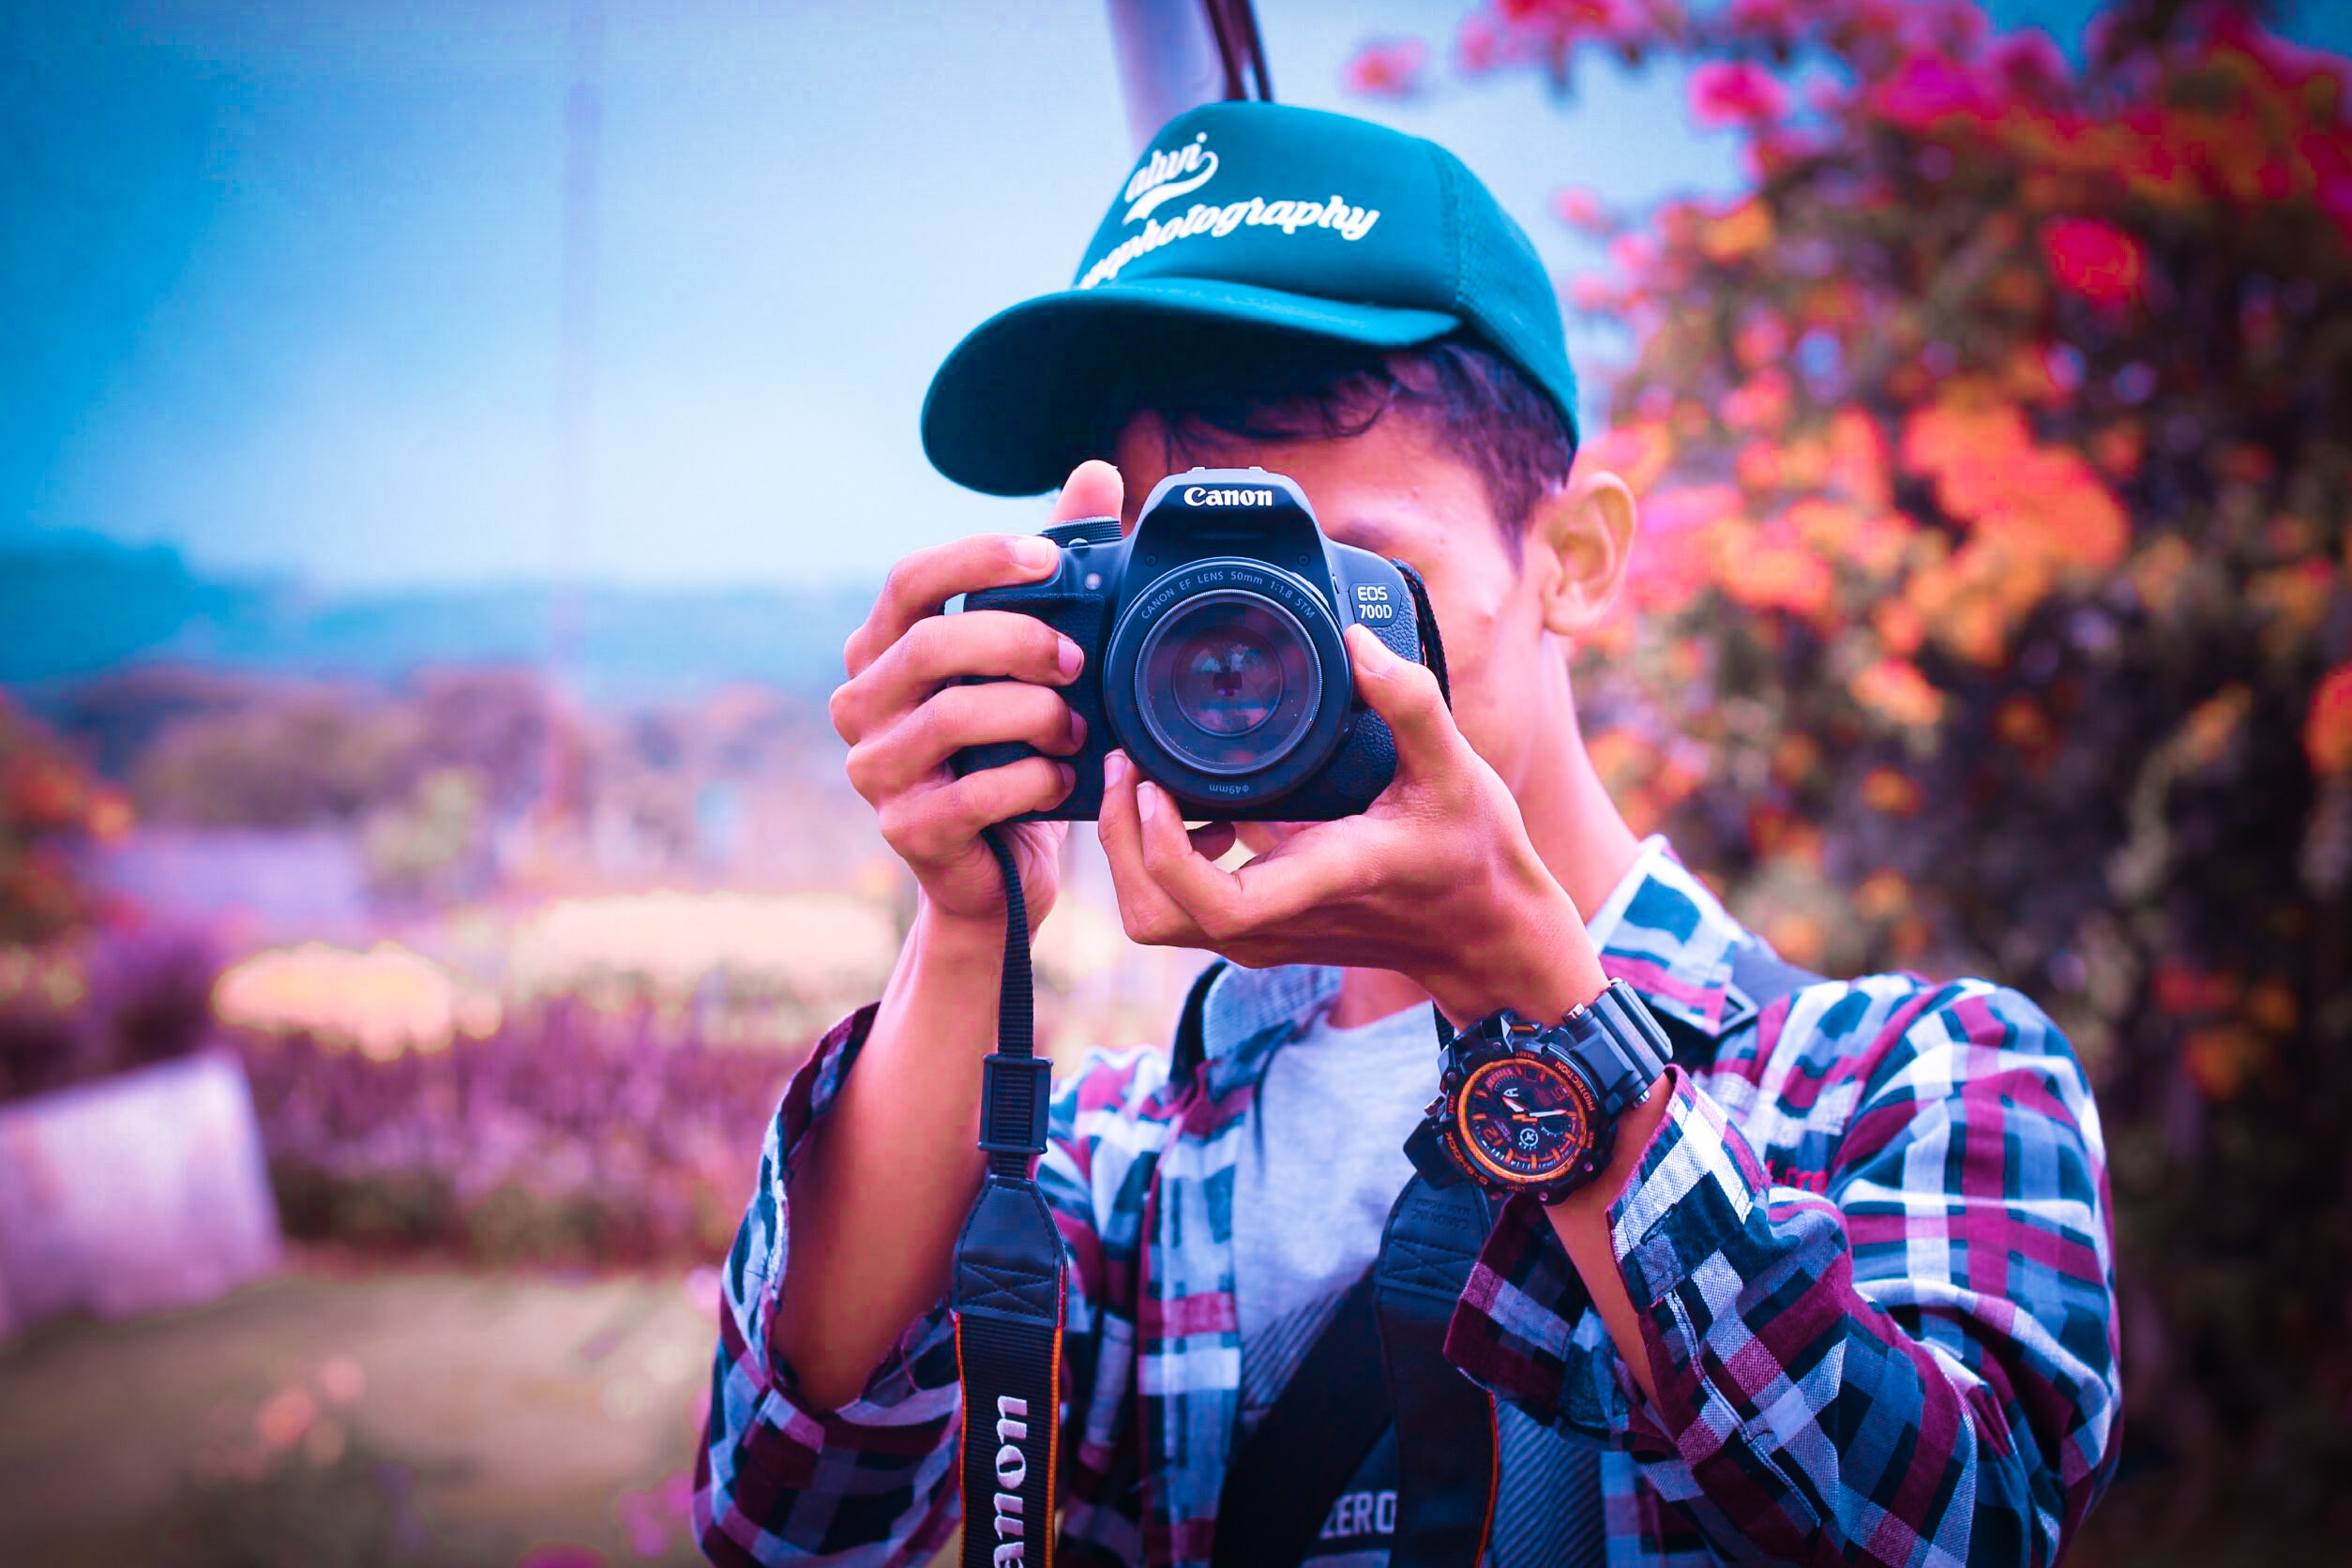 The Beginner's Guide On 'How To Become A Professional Photographer' -  CareerNinja